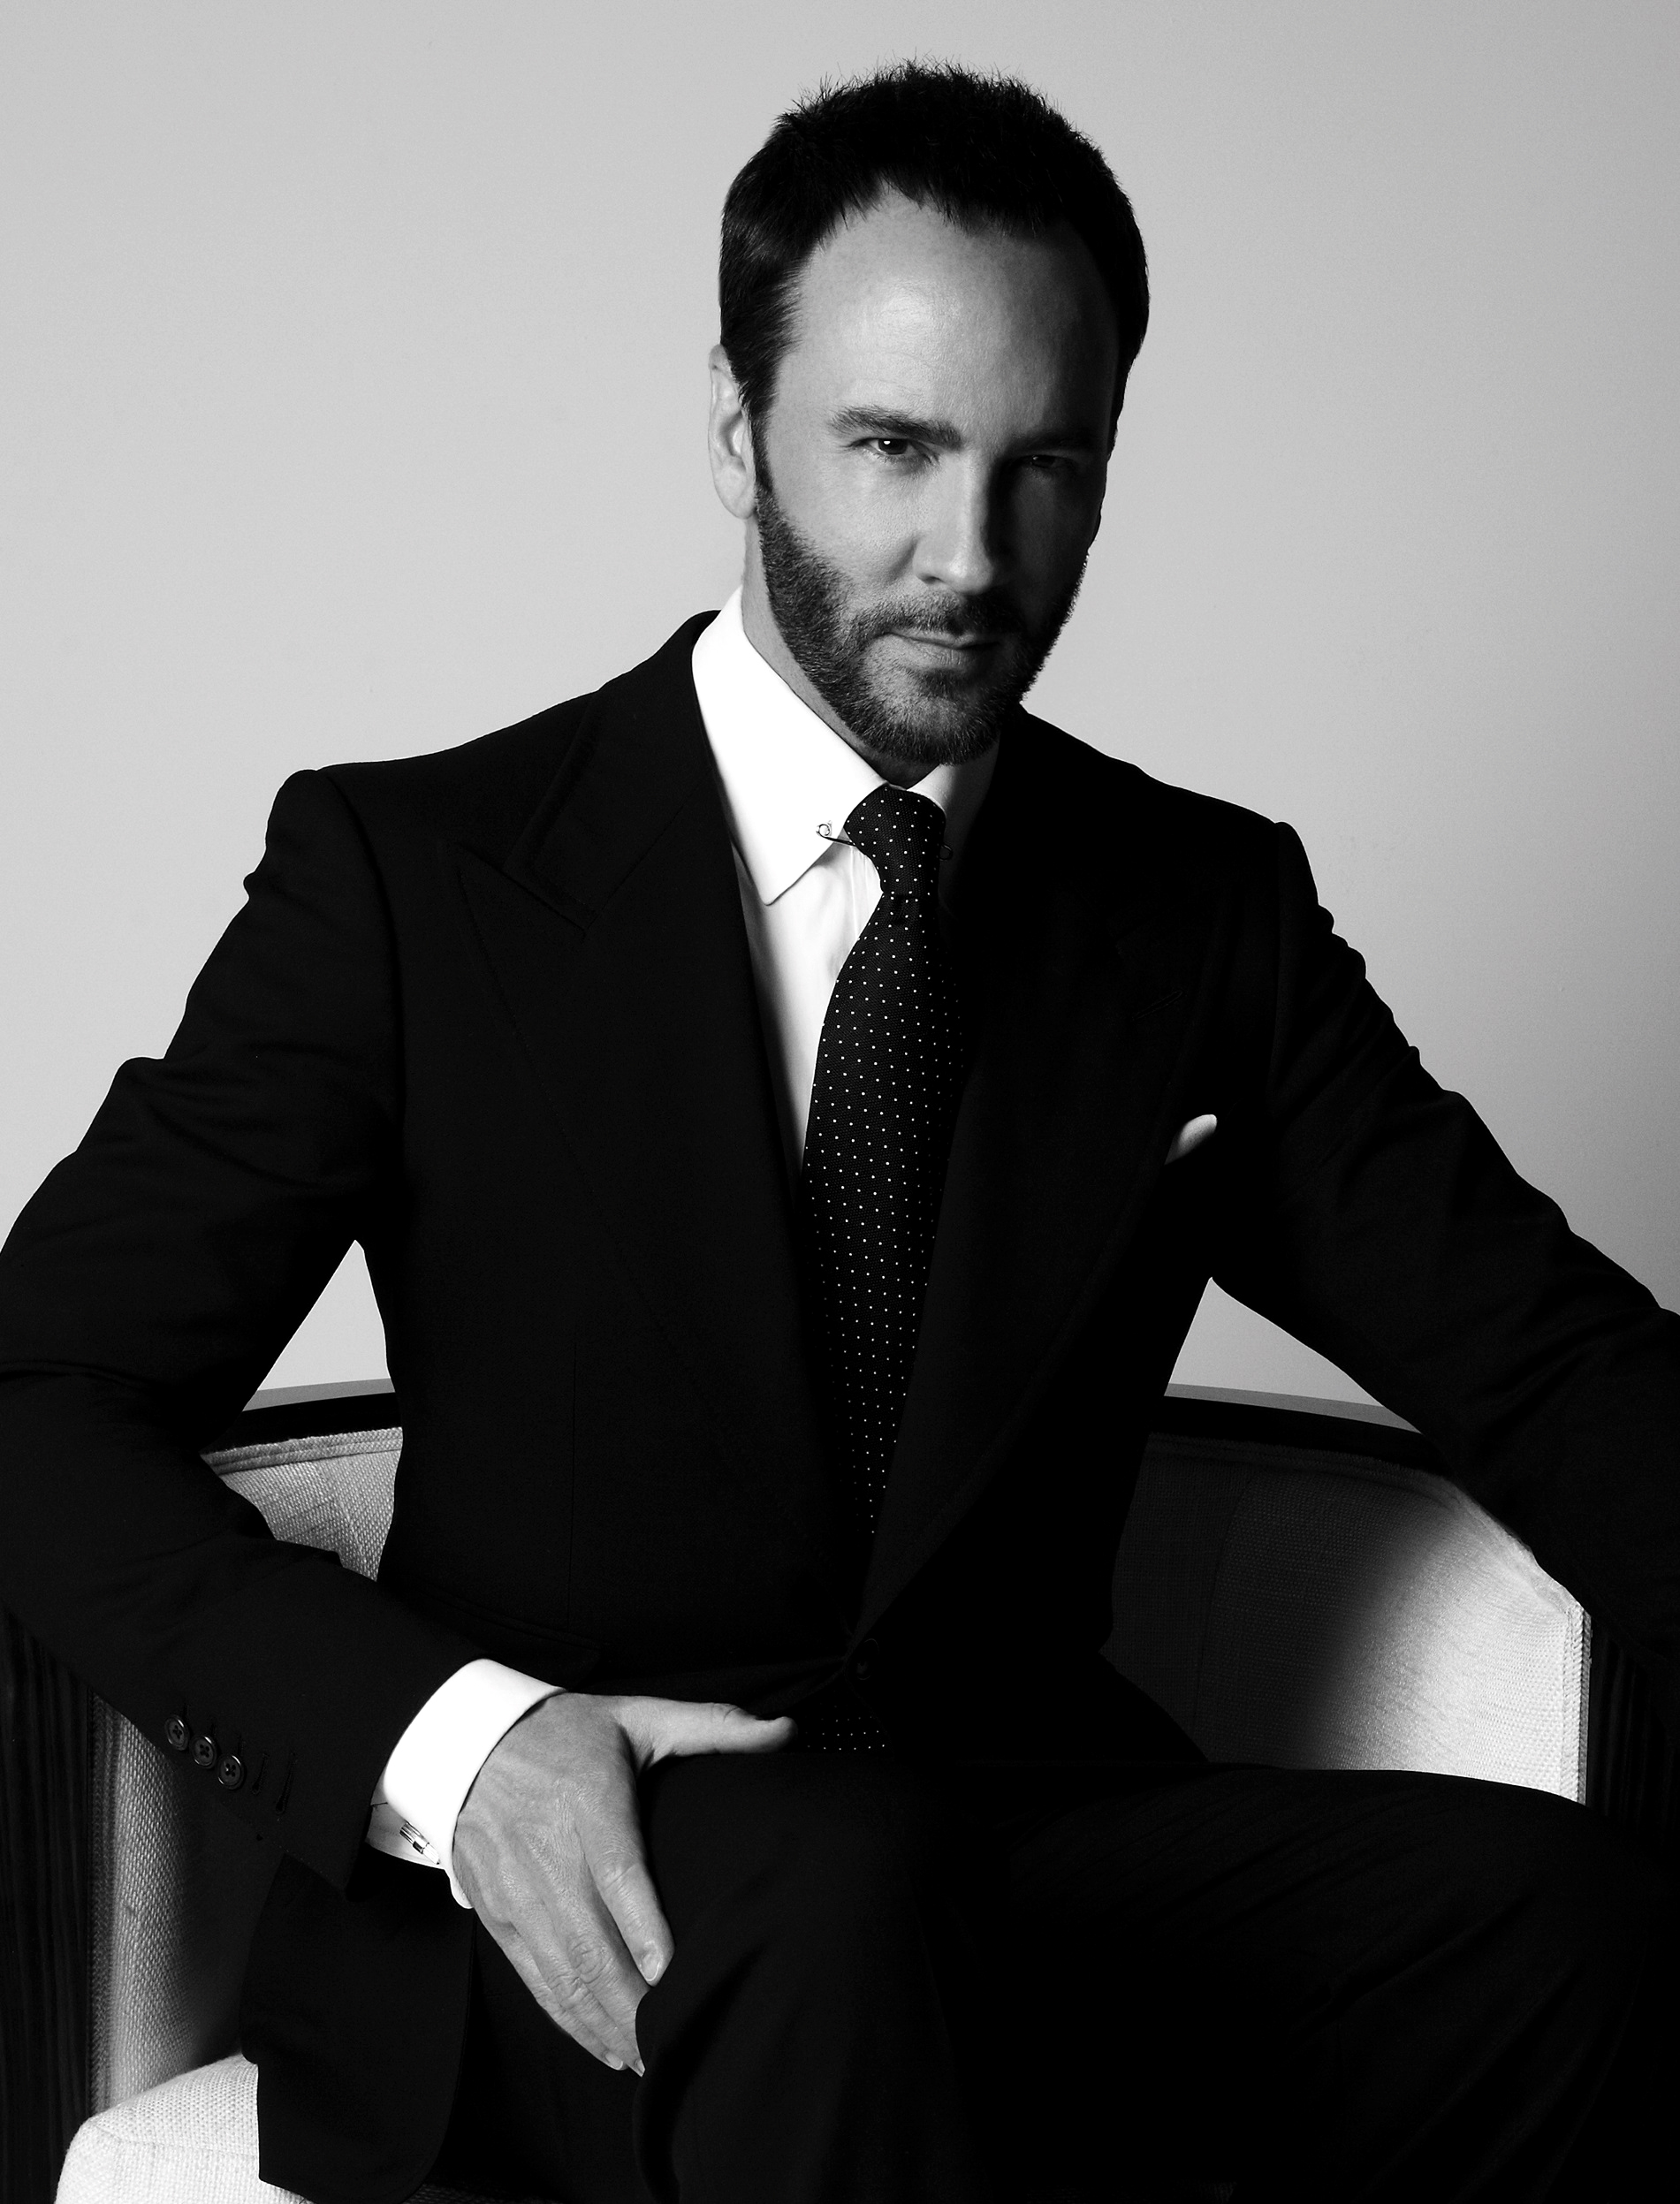 Tom Ford Elected Successor to Diane Von Furstenberg as CFDA Chairman